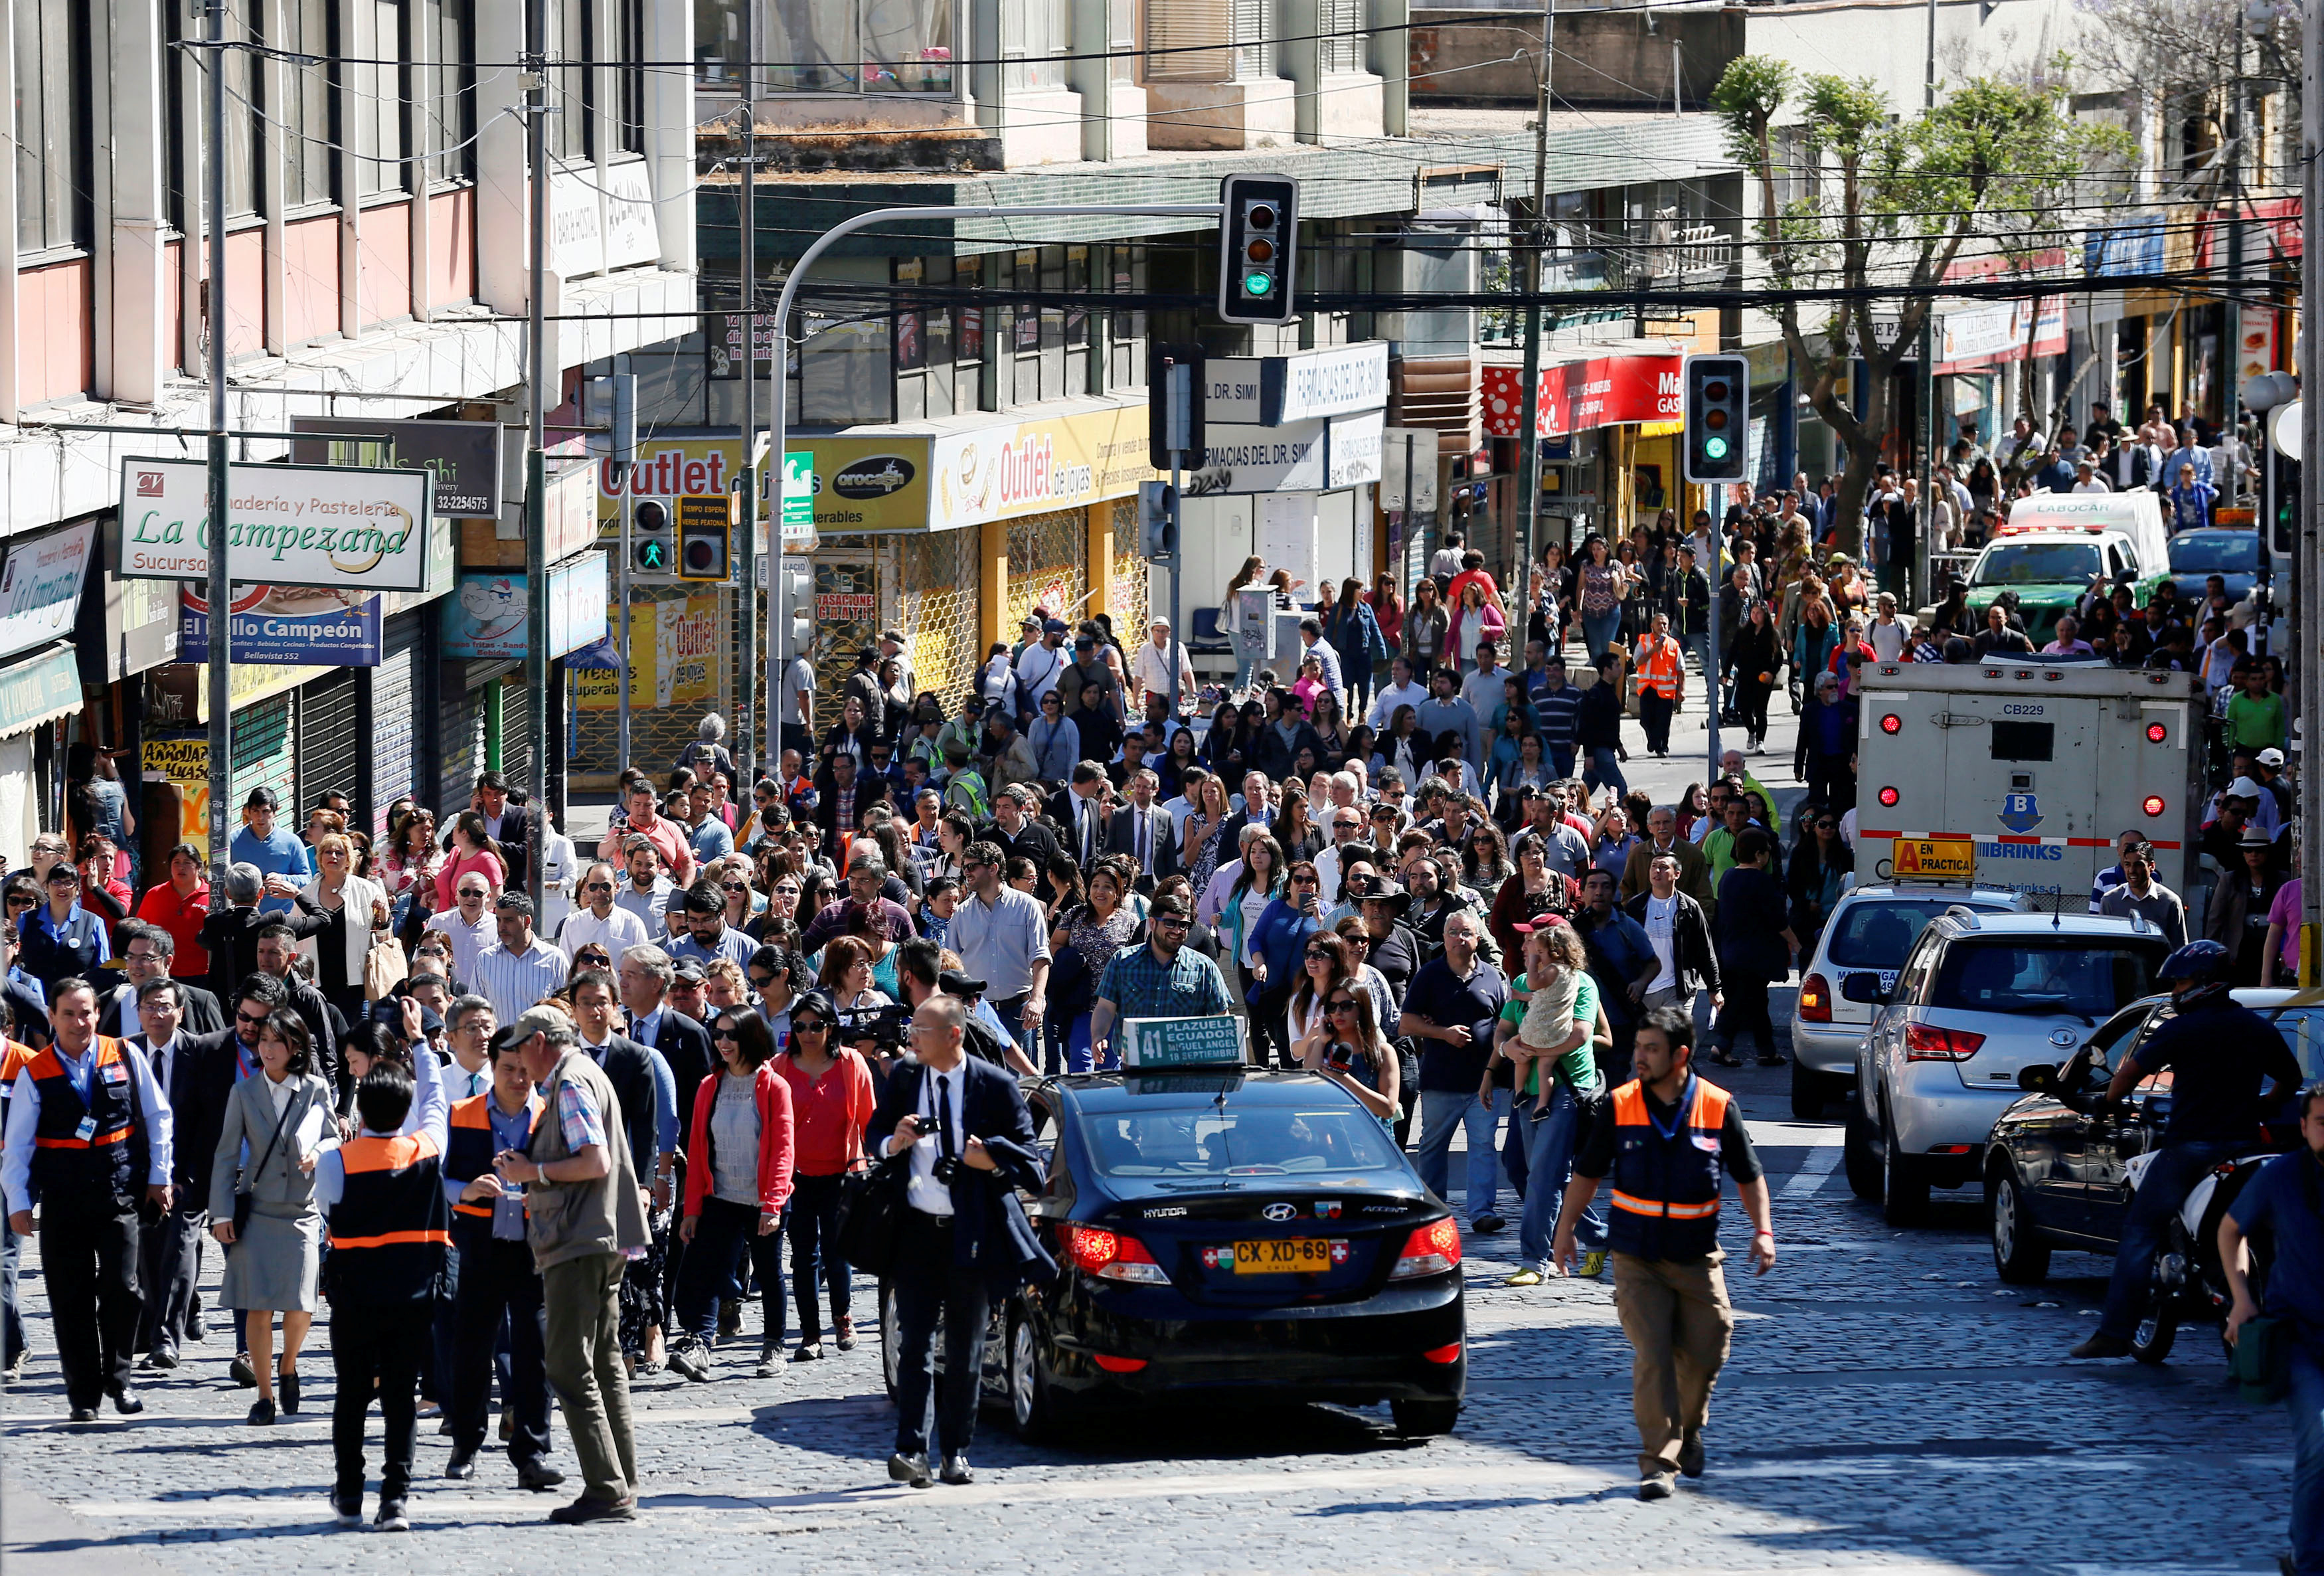 Citizens take part in a mass evacuation during a simulated disaster by a fictitious tsunami to mark World Tsunami Day on the Pacific coast in Valparaiso, Chile Nov. 3, 2016.